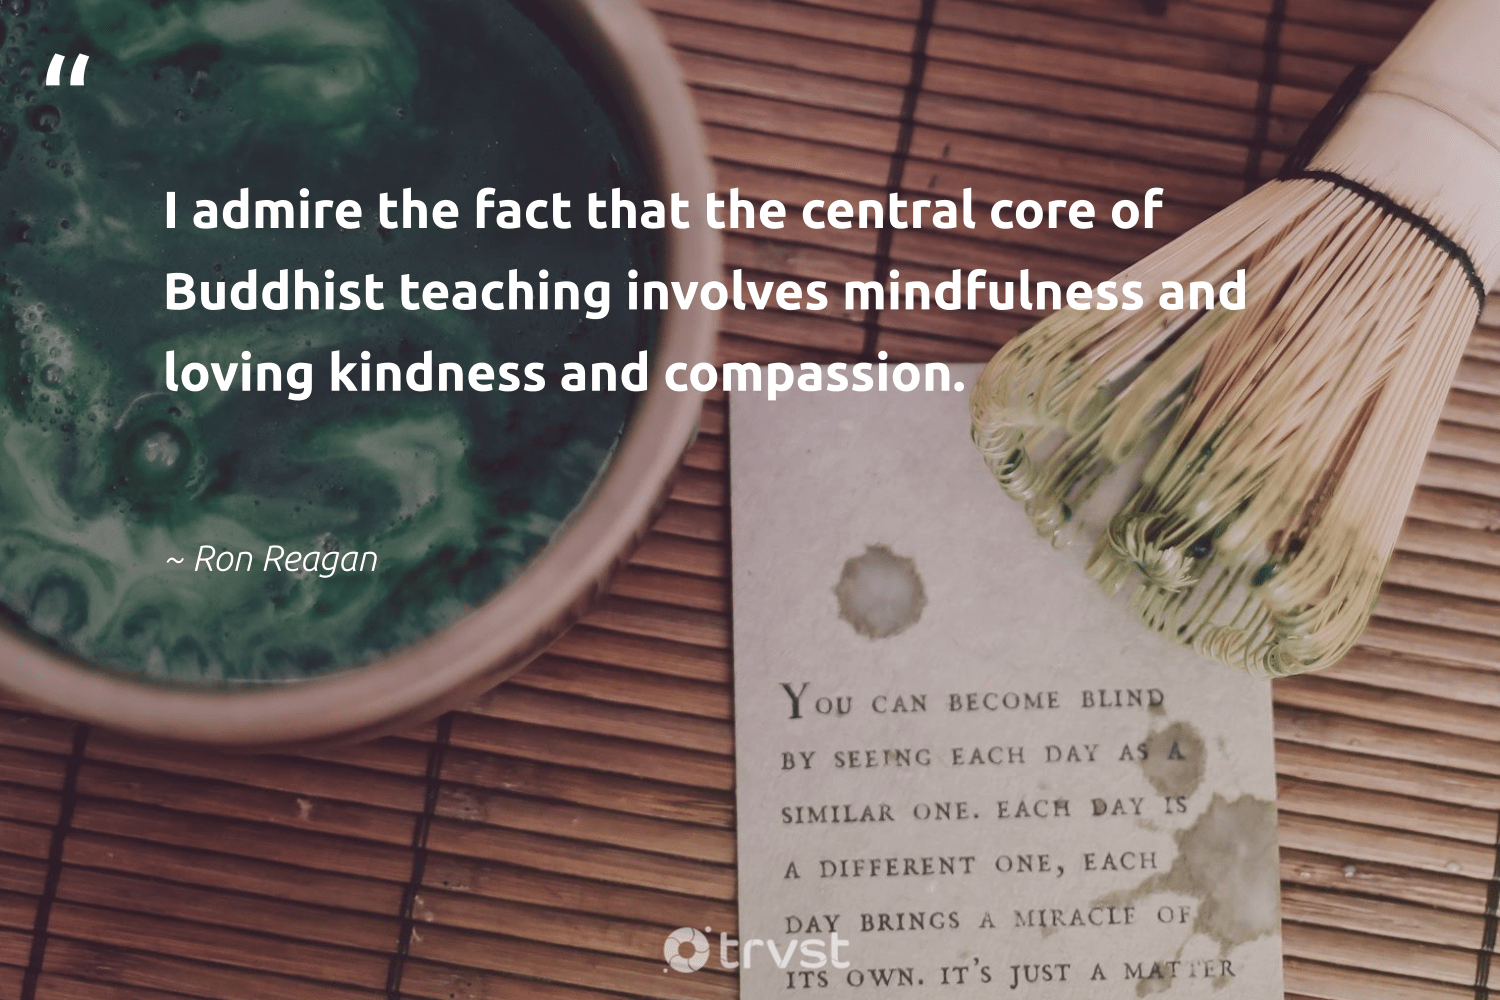 """""""I admire the fact that the central core of Buddhist teaching involves mindfulness and loving kindness and compassion.""""  - Ron Reagan #trvst #quotes #mindfulness #kindness #meditate #mentalheatlh #togetherwecan #planetearthfirst #creativemindset #positivity #nevergiveup #bethechange"""